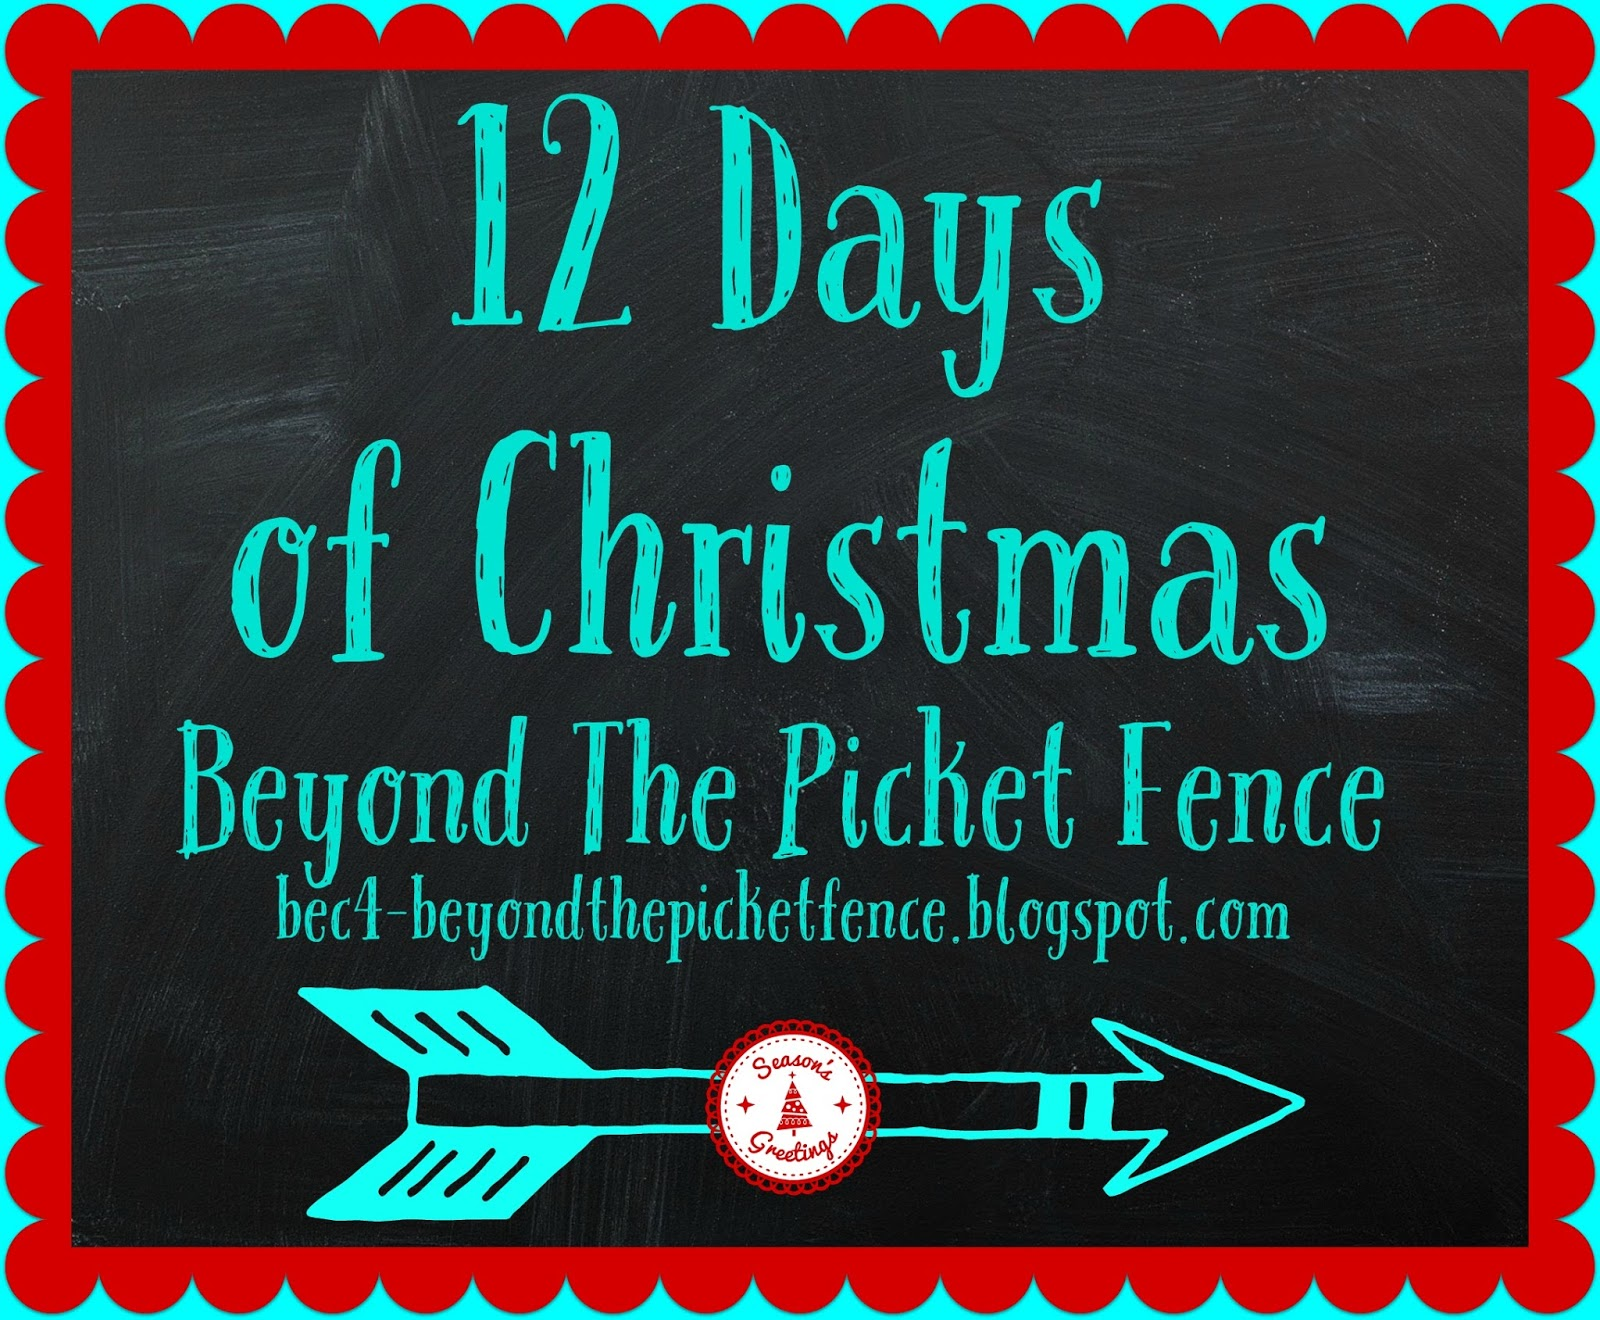 12 Days Of Christmas Ideas.Beyond The Picket Fence 12 Days Of Christmas Day 1 Pallet